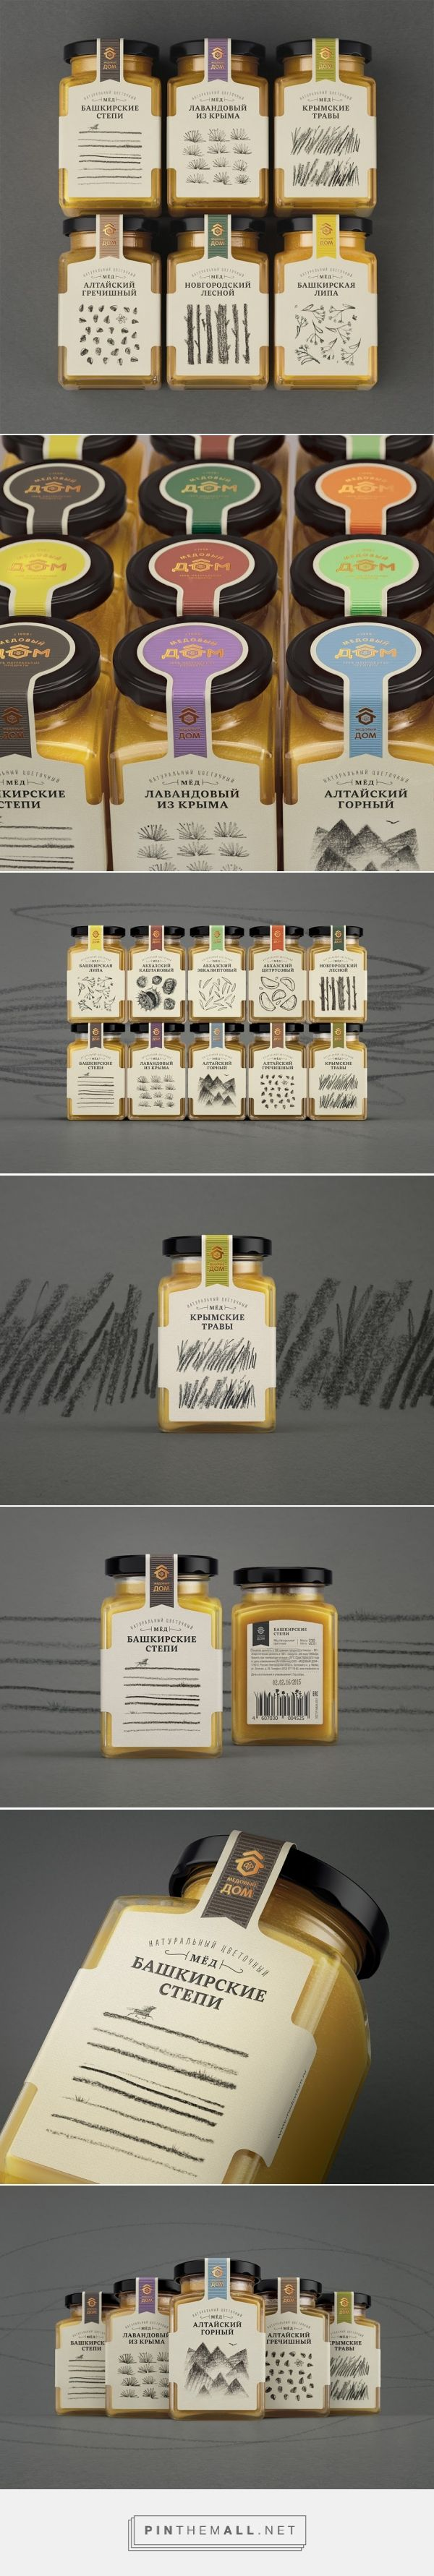 Honey House packaging designed by Masha Ponomareva (Russia) - http://www.packagingoftheworld.com/2016/03/honey-house.html